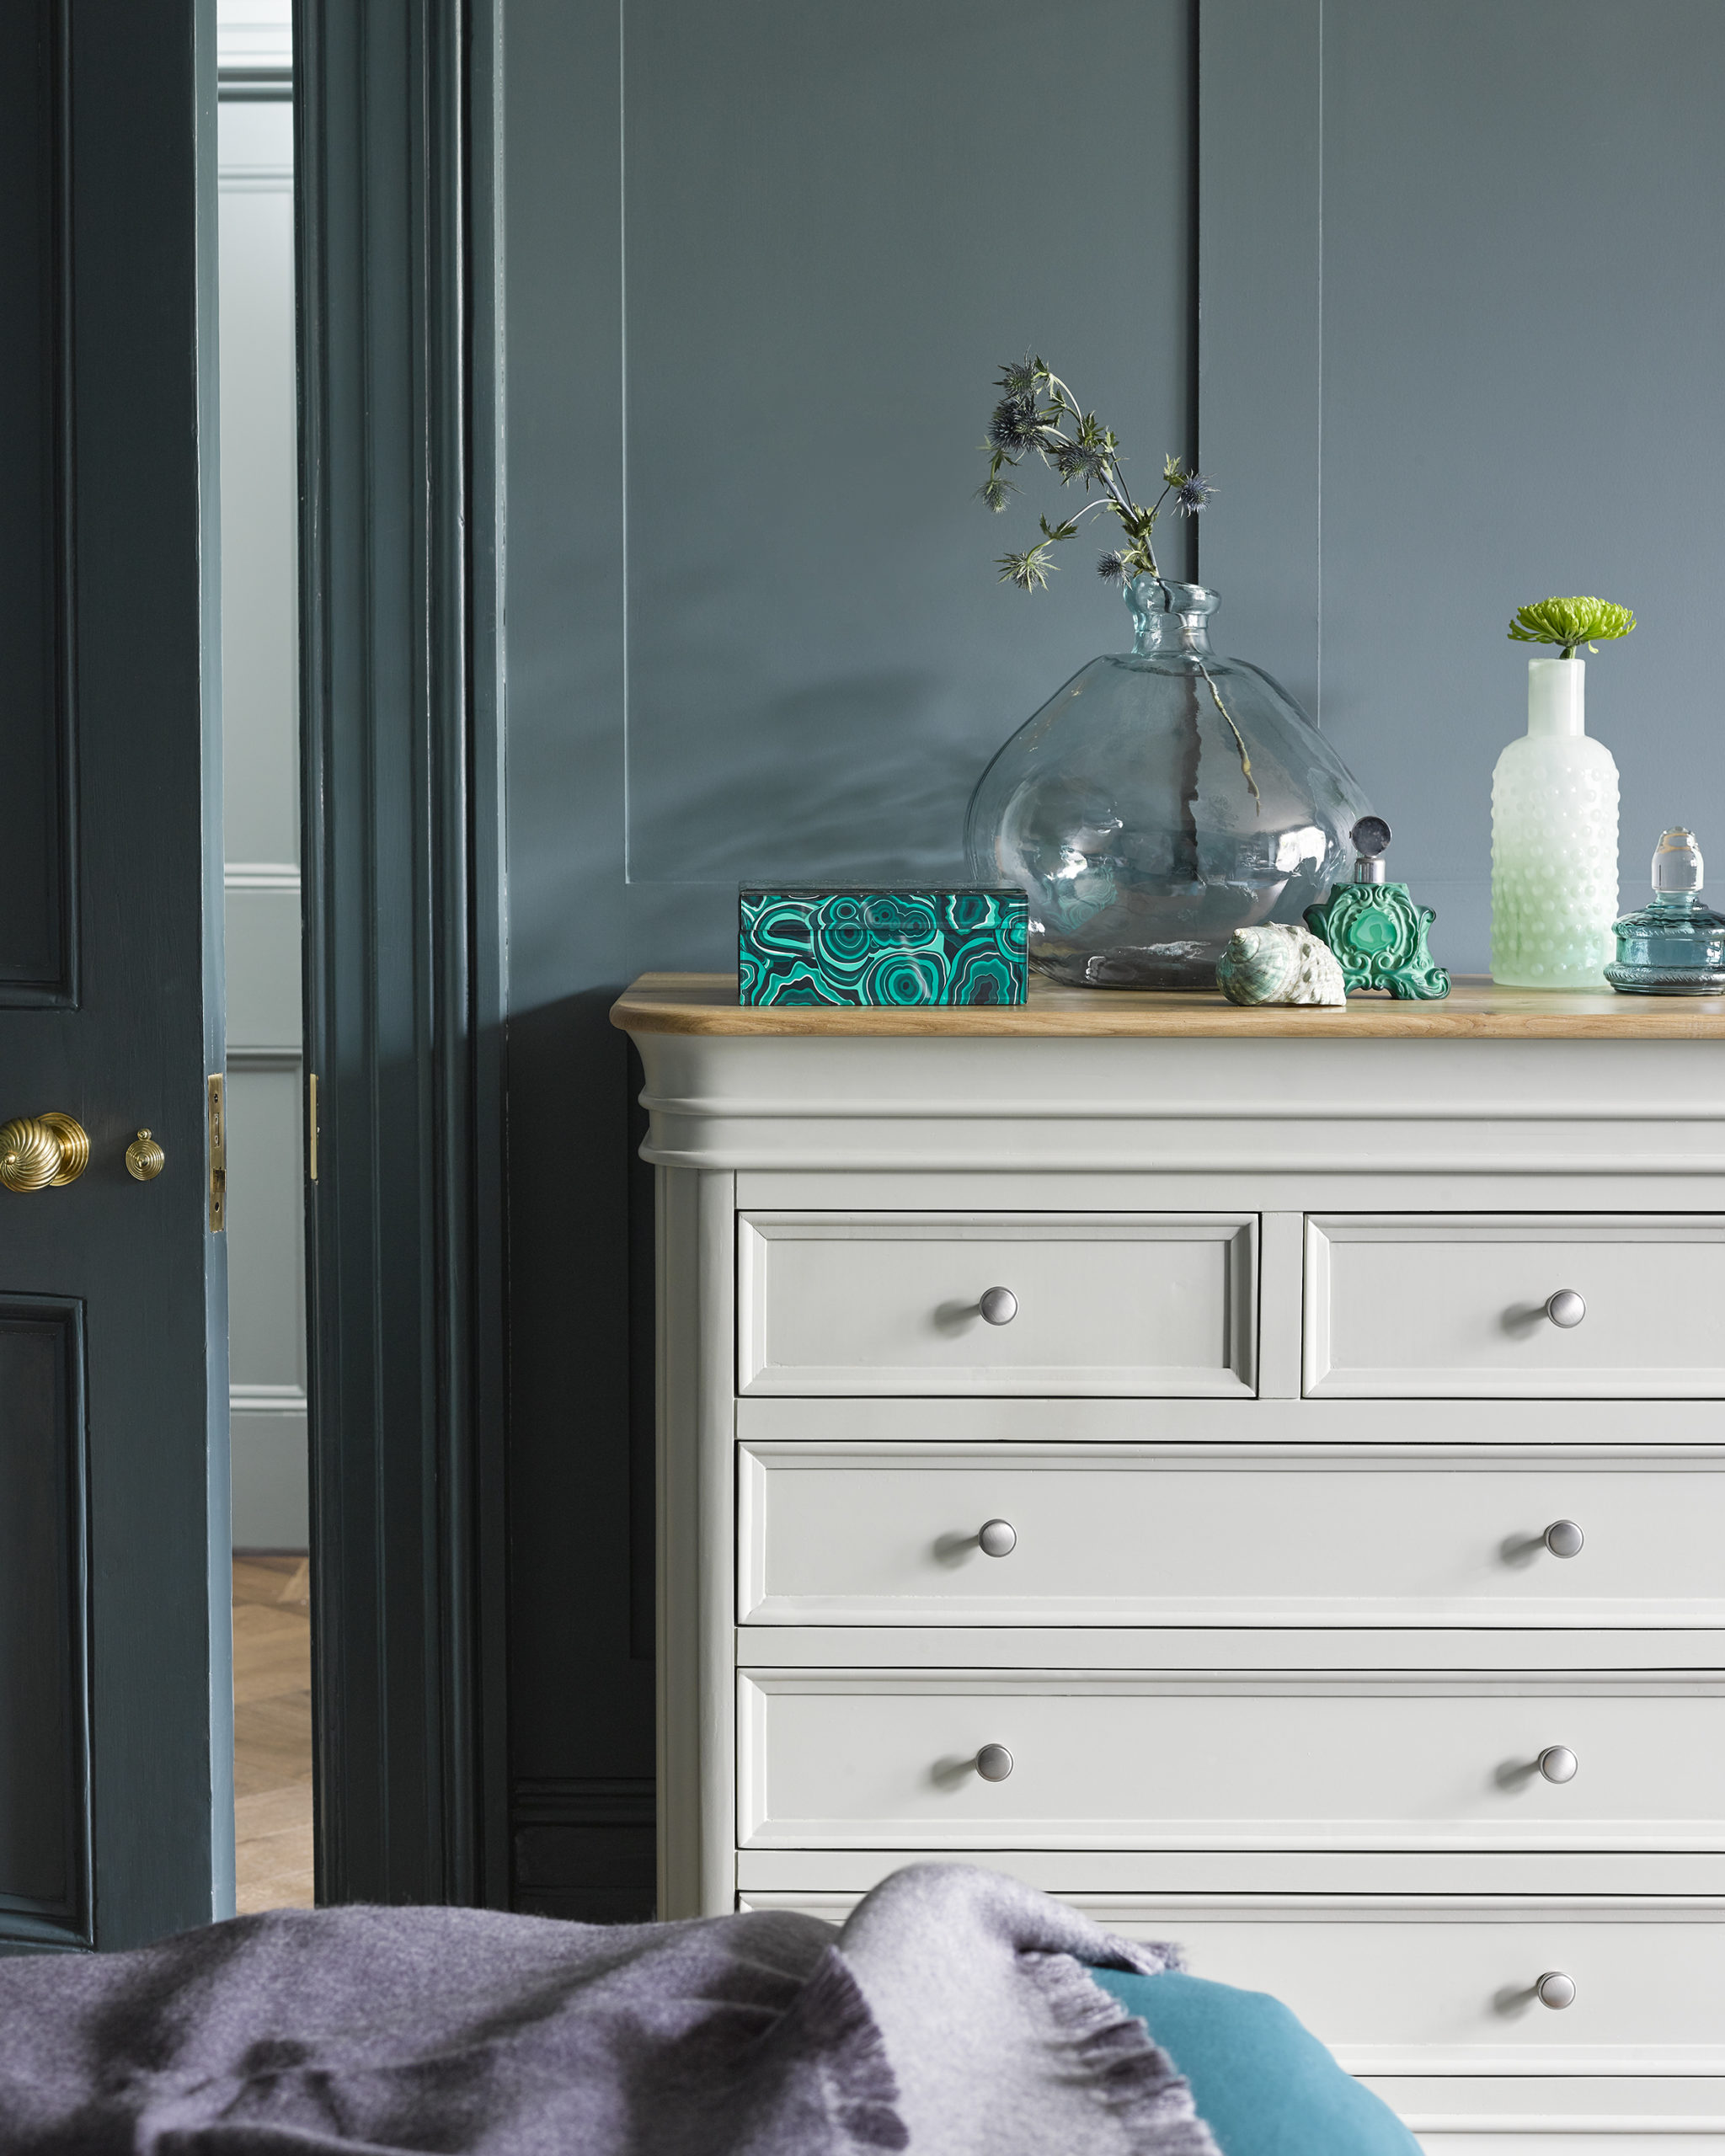 White chest of drawers against deep green-blue walls in bedroom